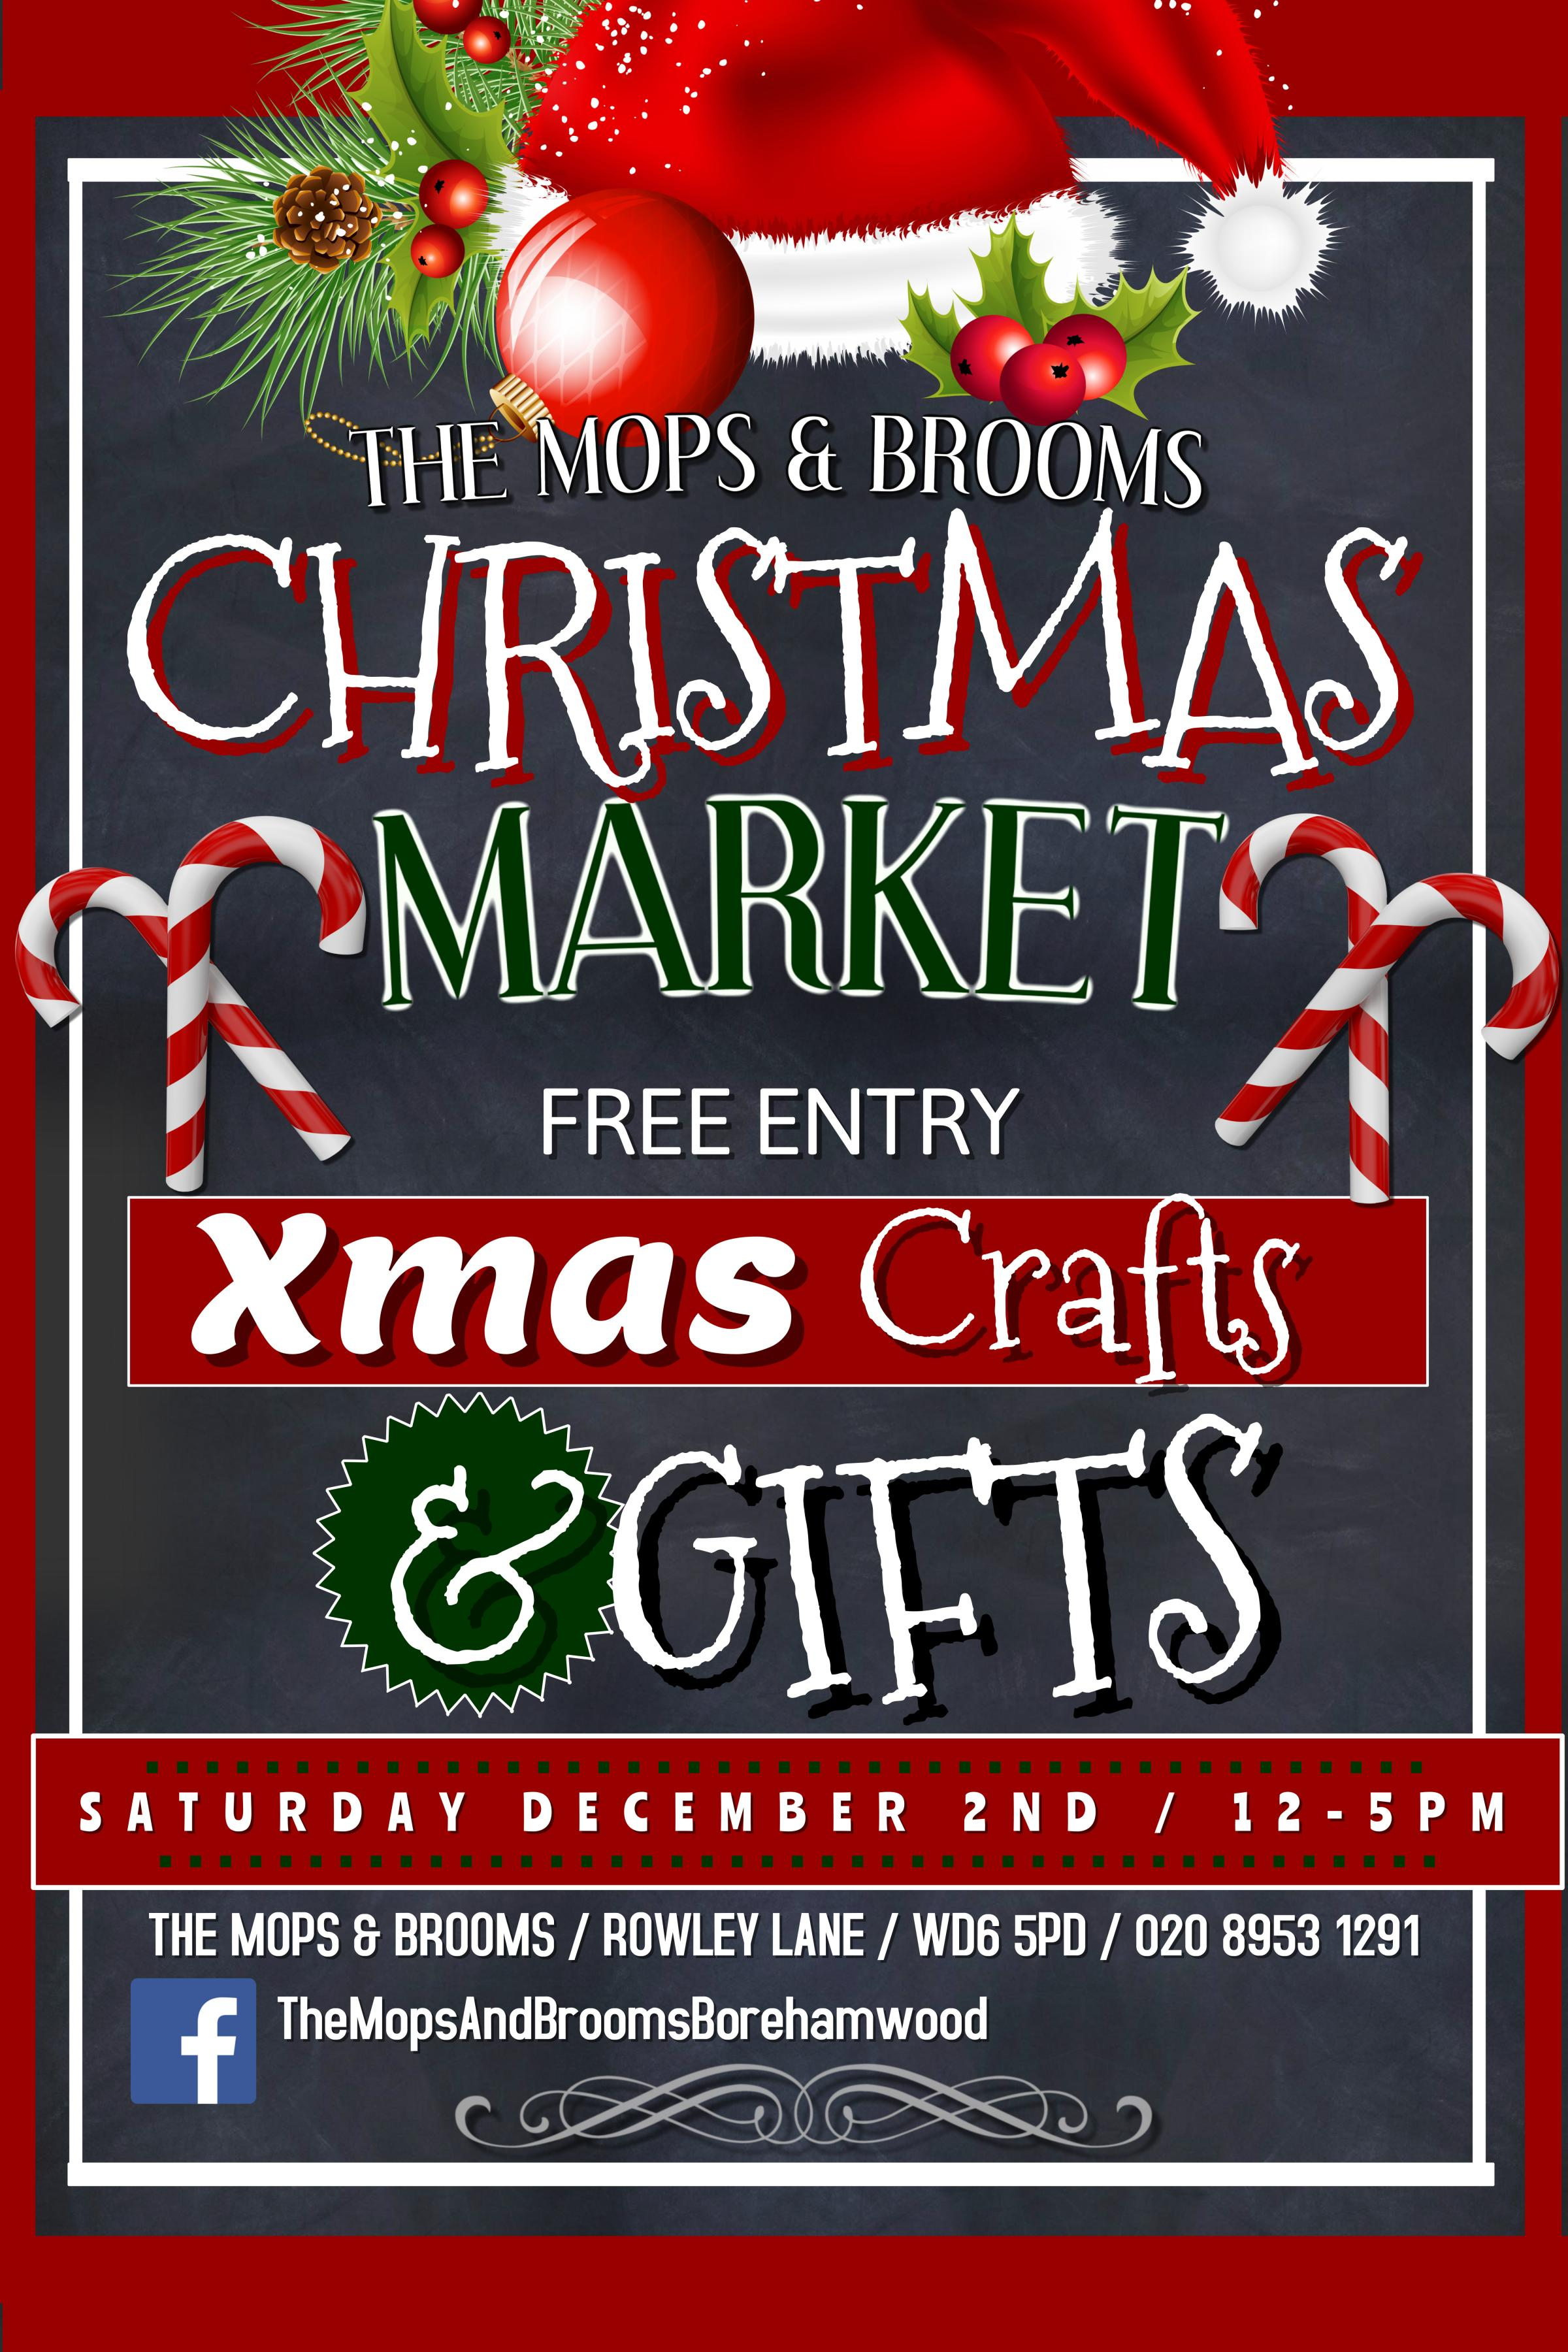 The Mops & Brooms Christmas Market - 2017